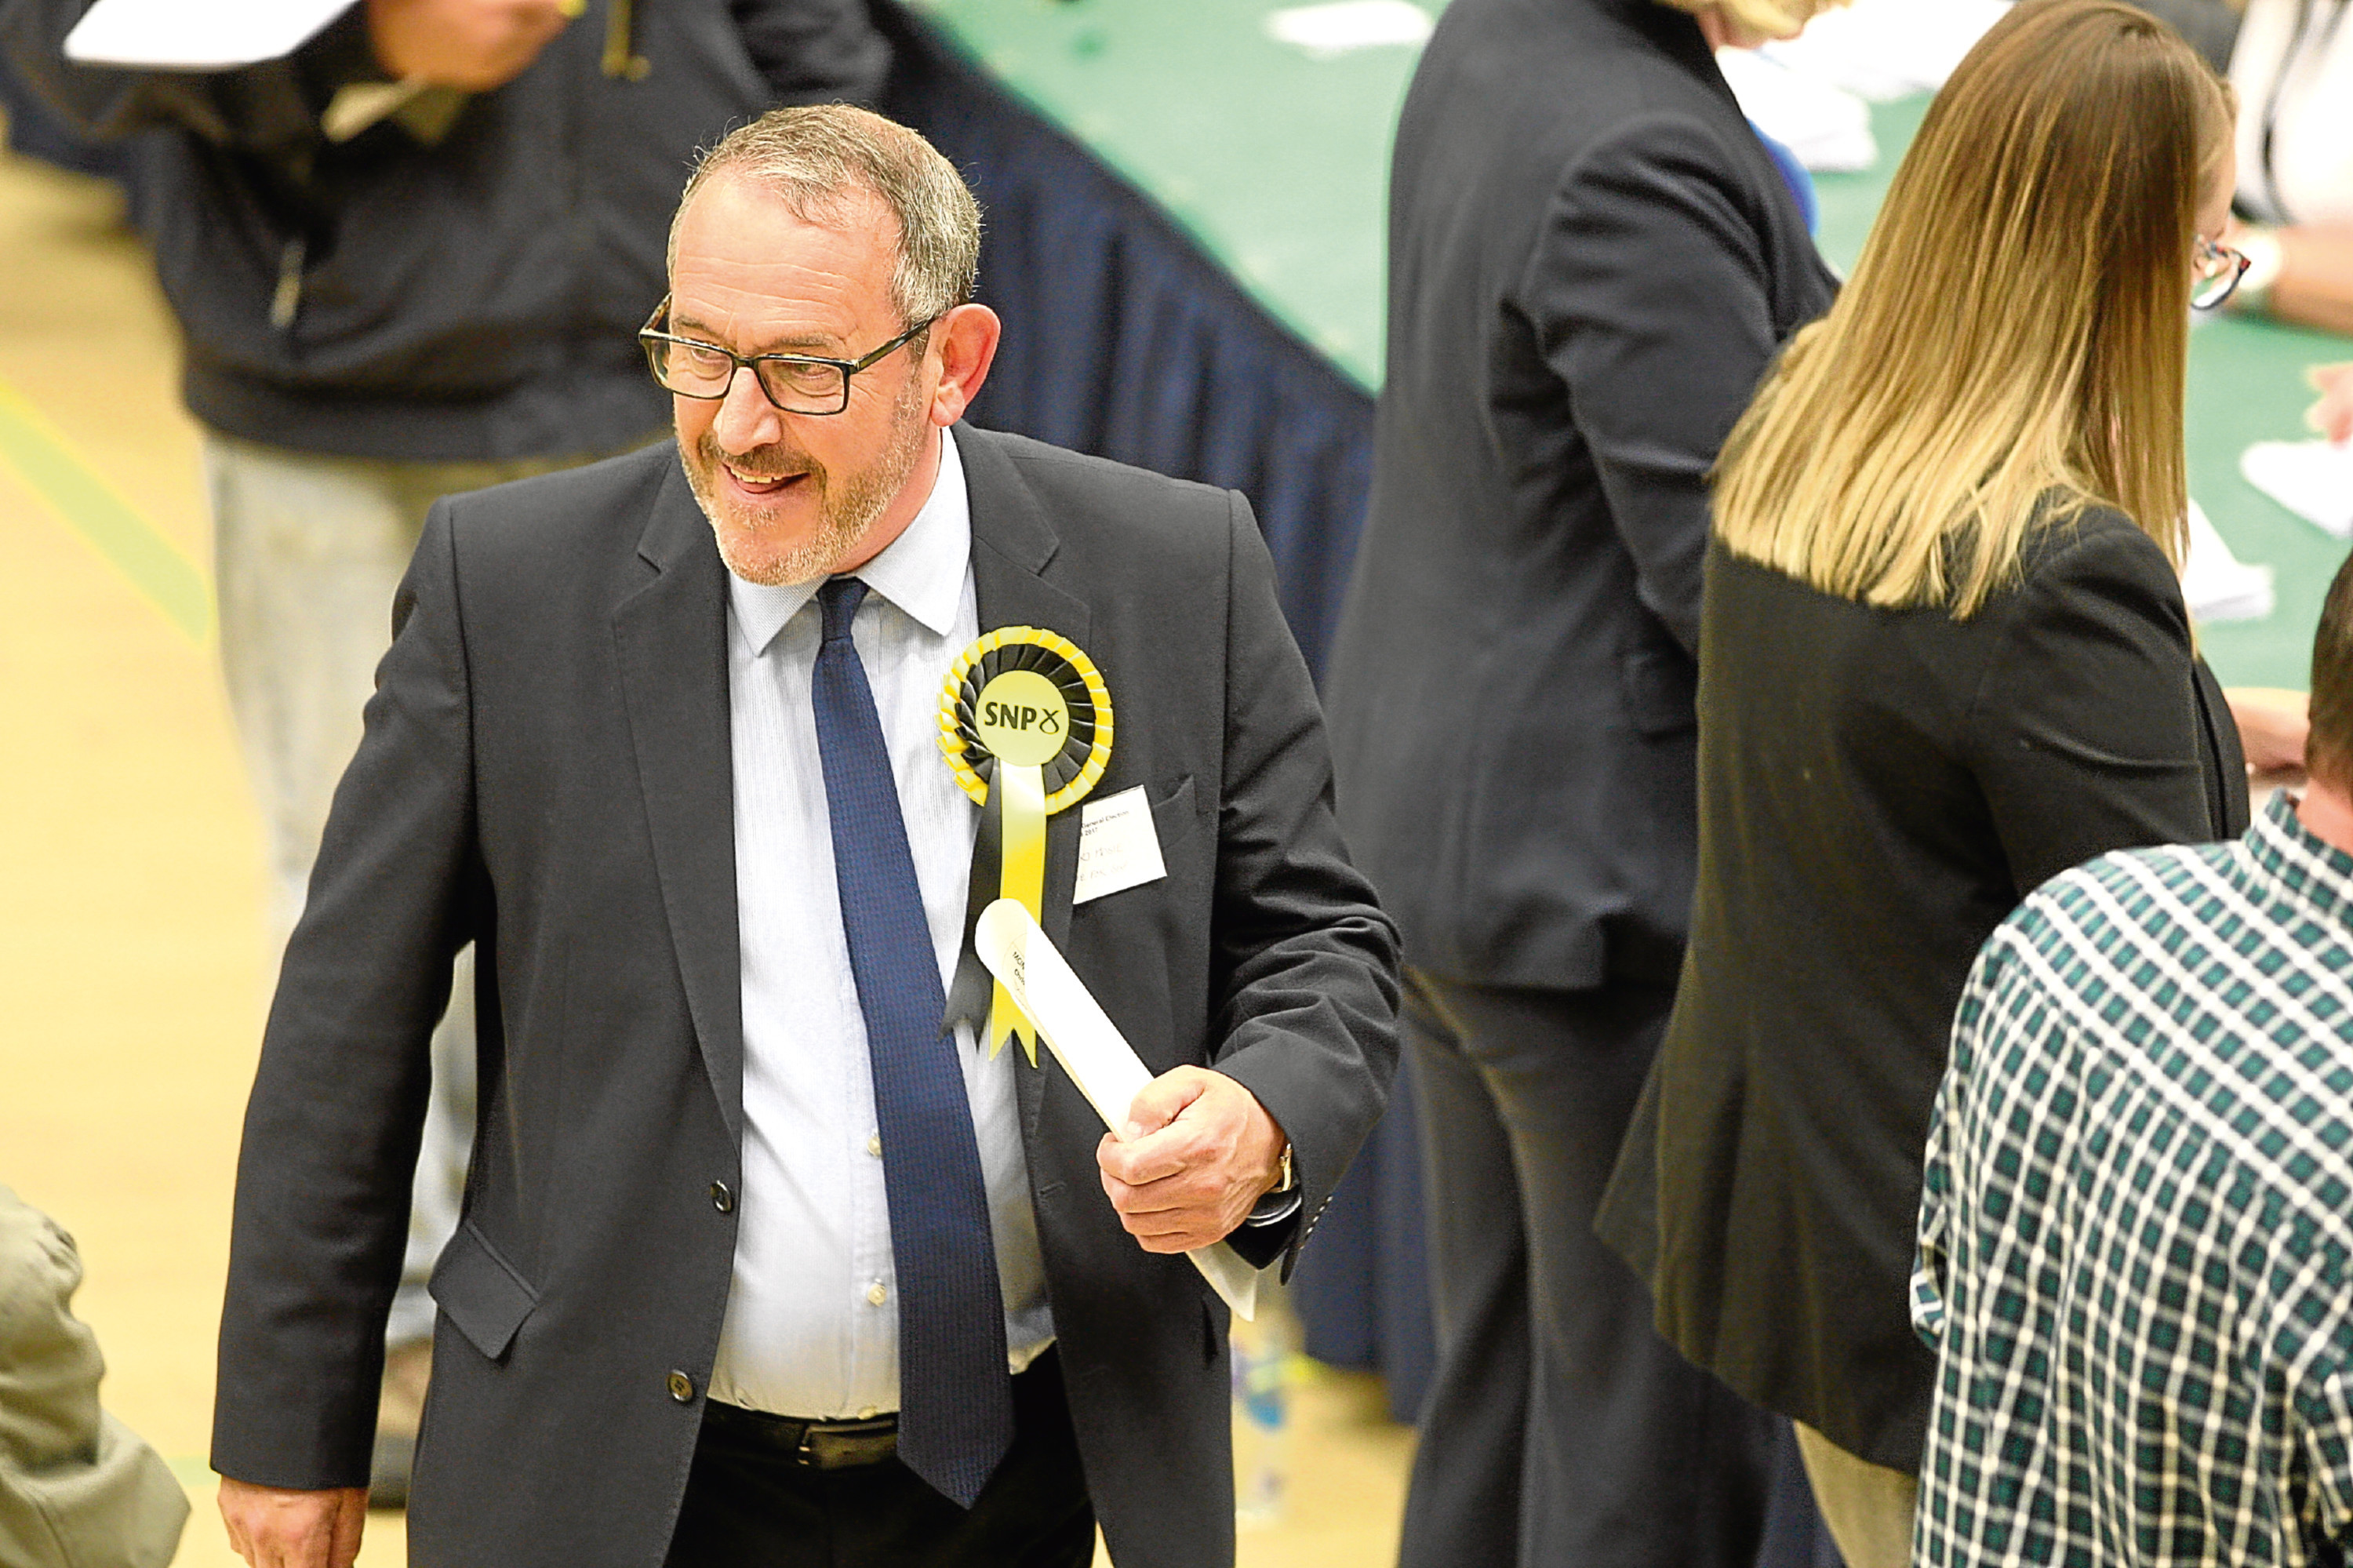 Smiles all round: The SNP's Stewart Hosie was elected as MP for Dundee East for a fourth term.